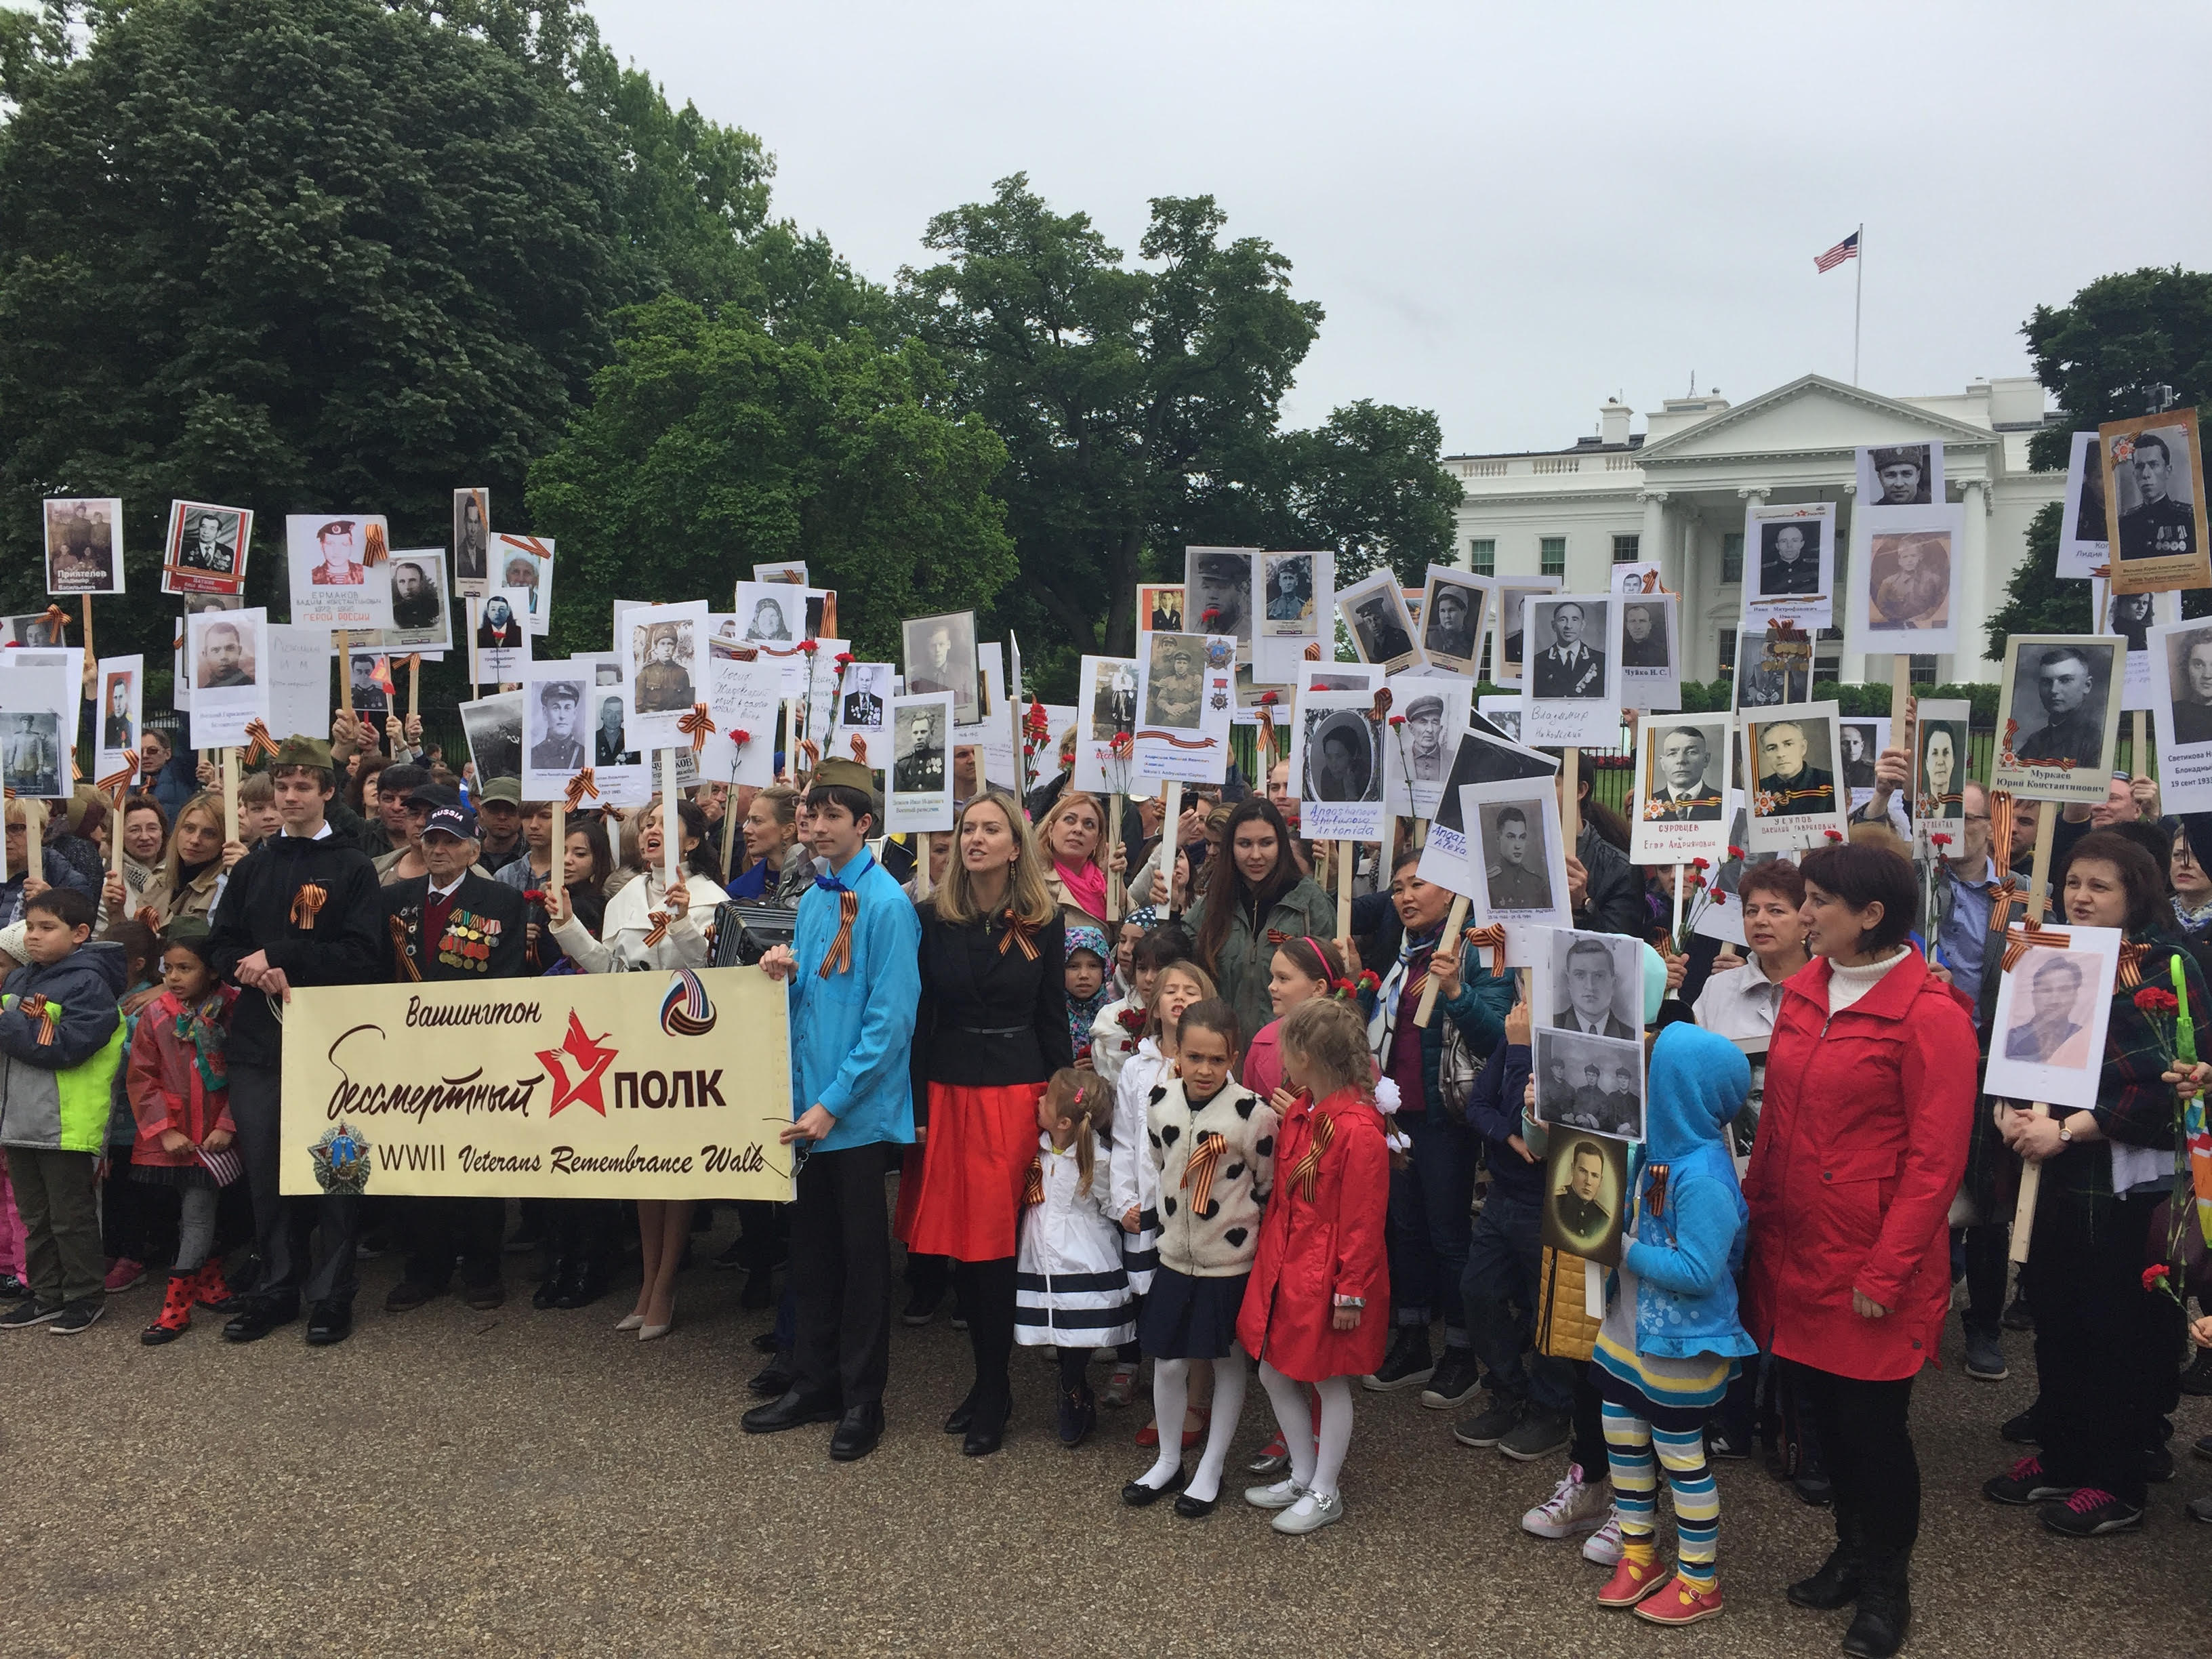 In Washington DC, the downtown area was closed for the Immortal regiment's march. The procession started at the White House and ended at the WWII memorial on the National Mall park. About 450 people turned up.